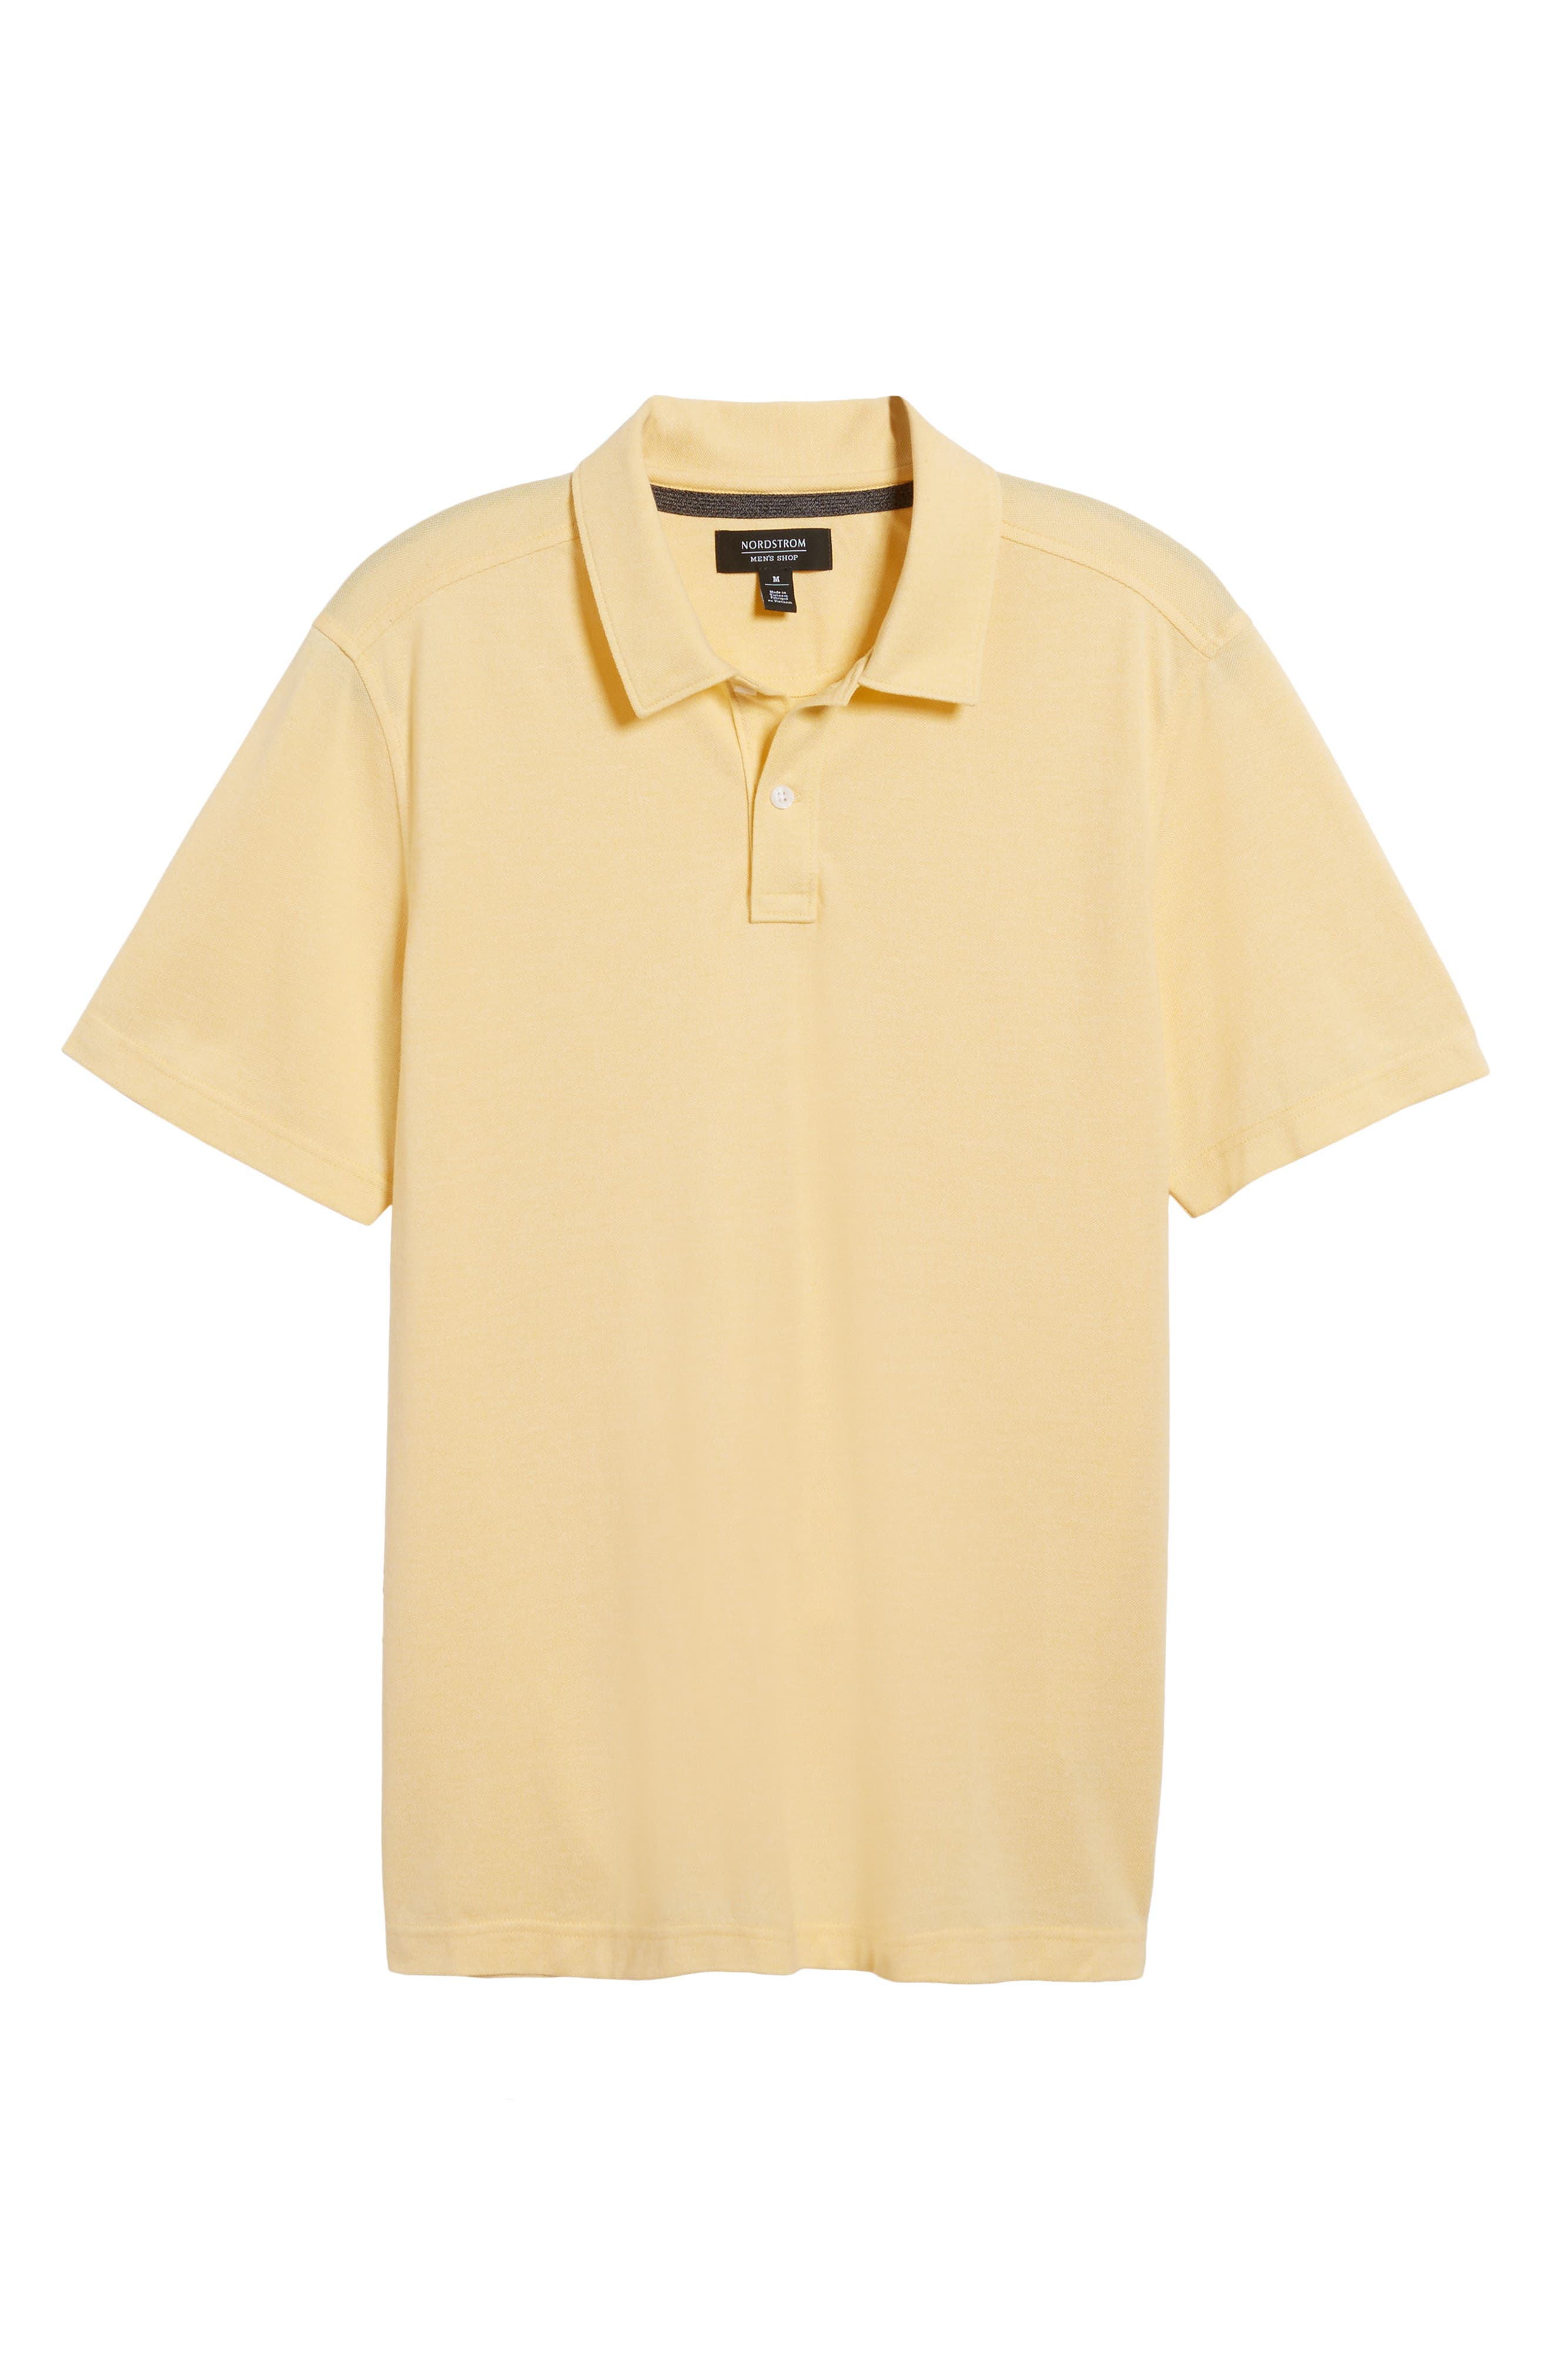 Regular Fit Polo,                             Alternate thumbnail 6, color,                             Yellow Silk